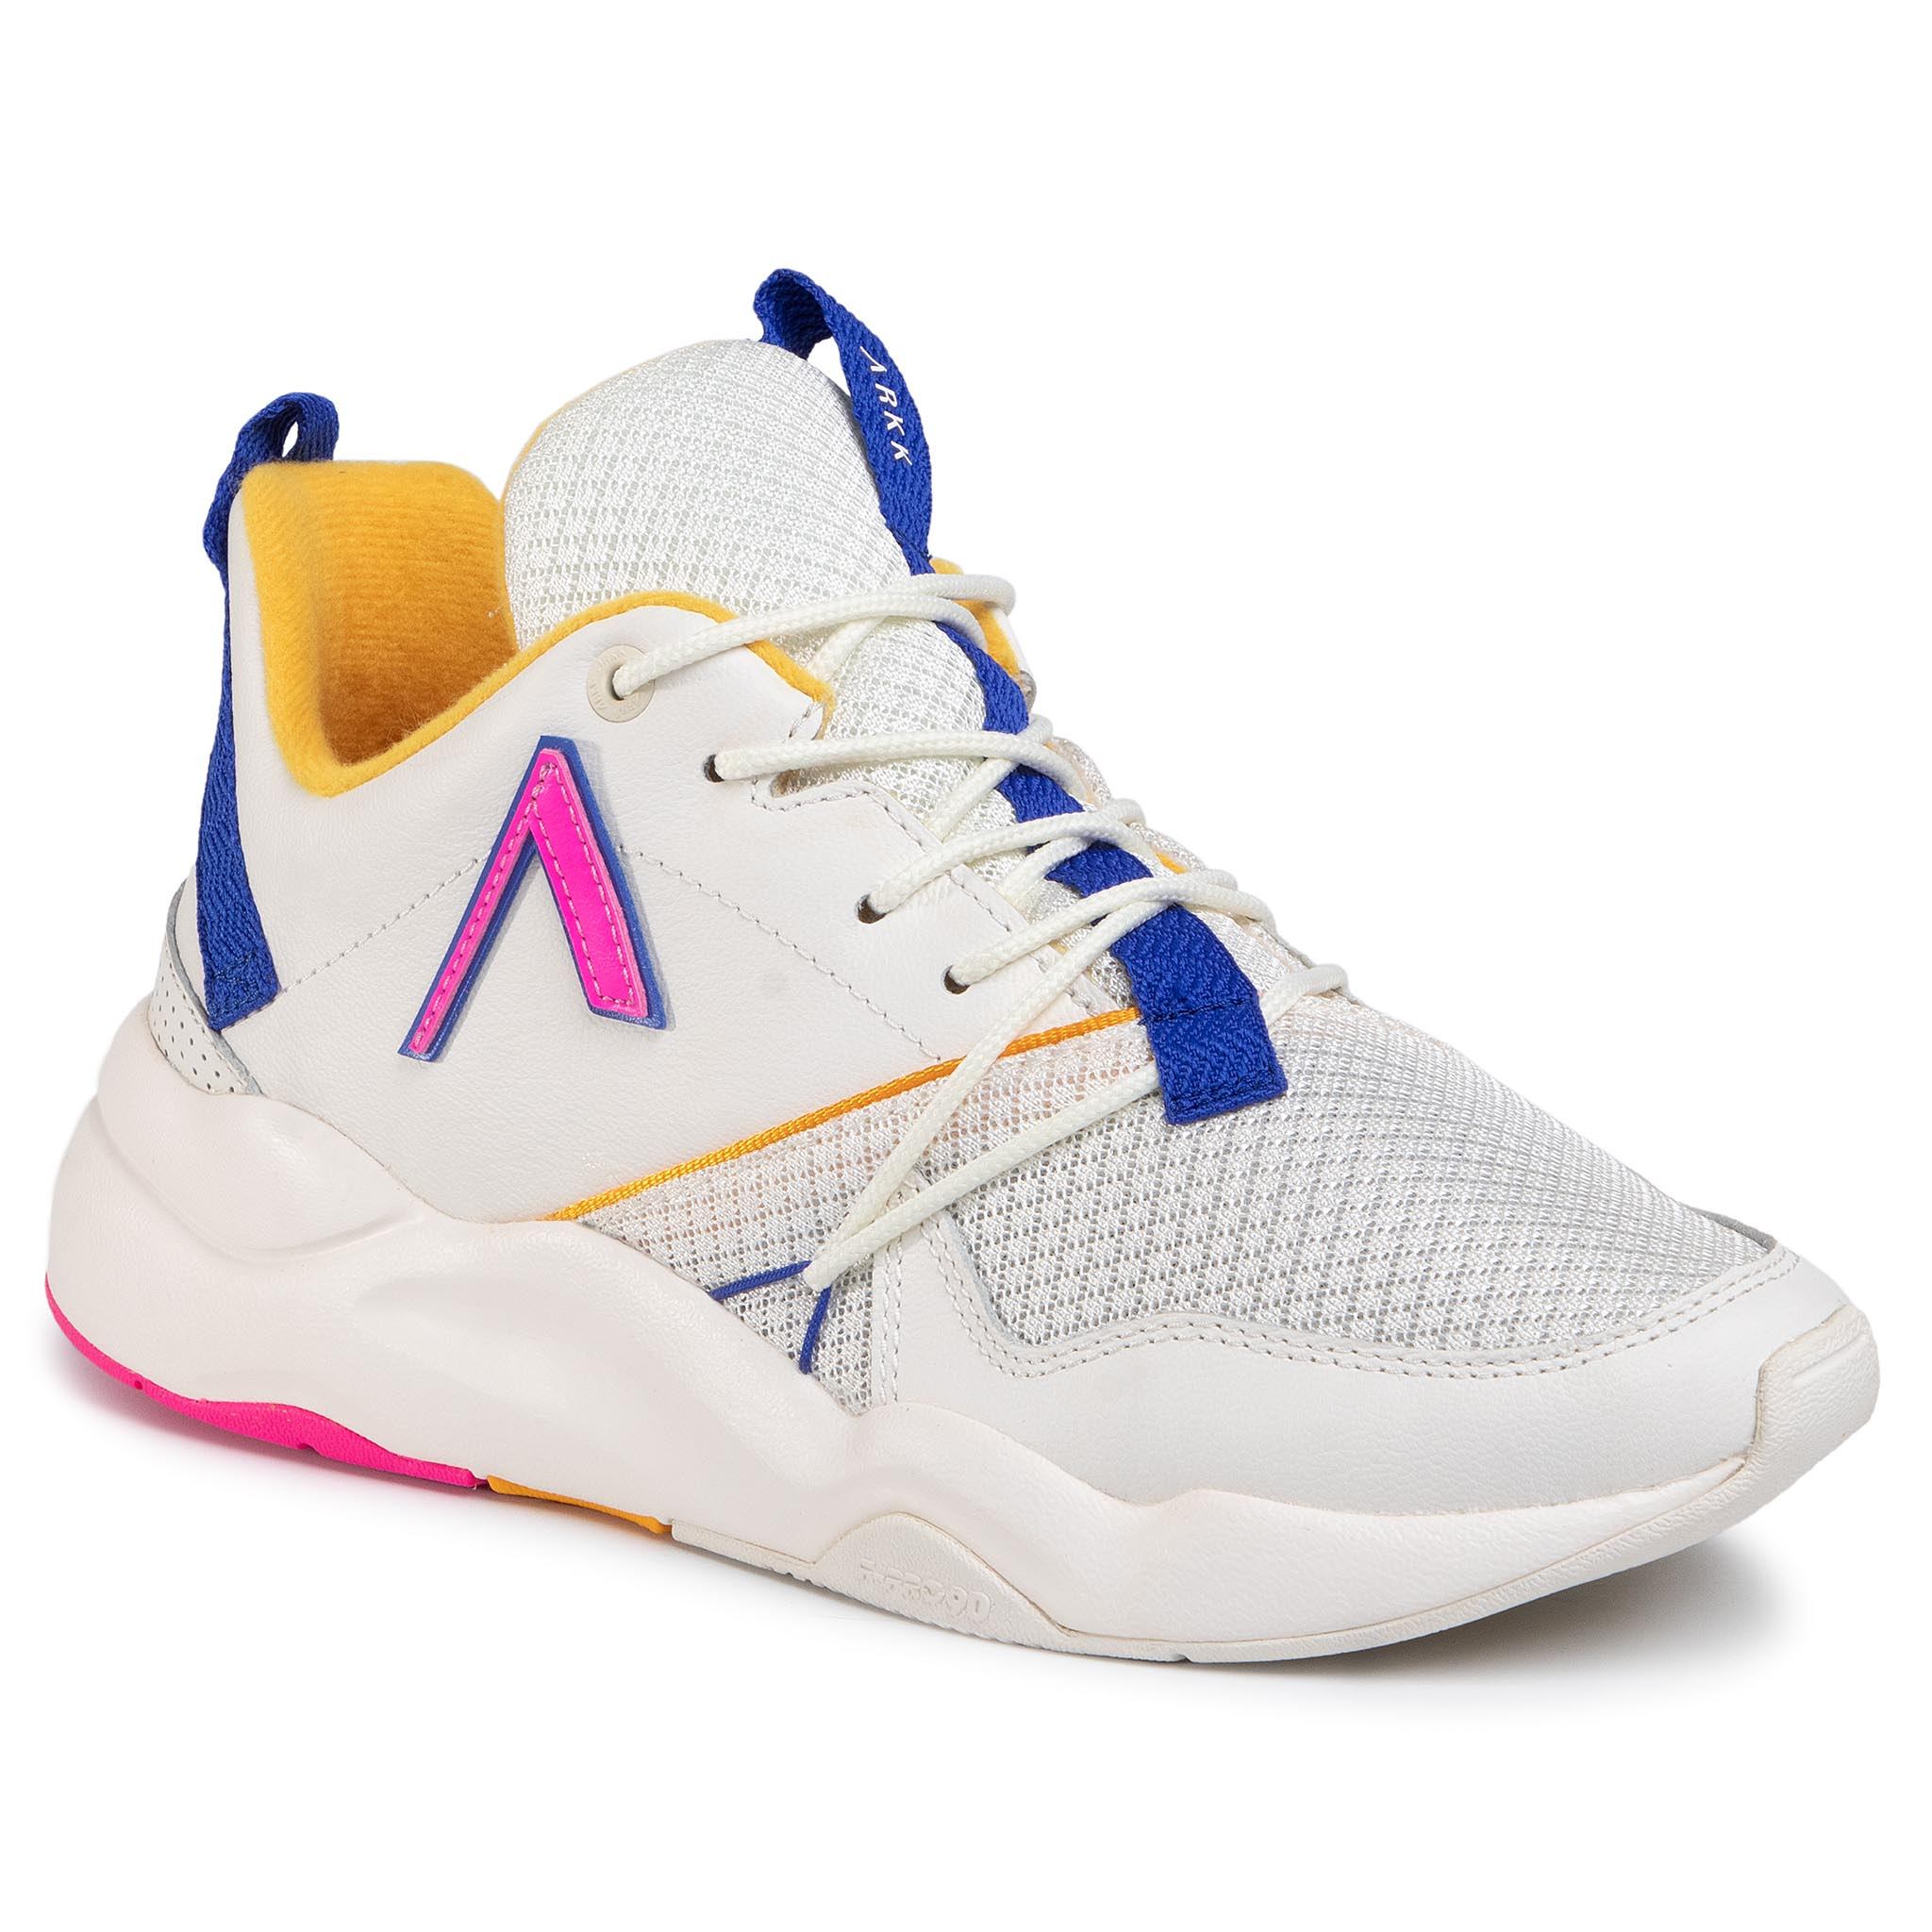 Image of Sneakers ARKK COPENHAGEN - Asymtrix Mesh 2.0 F-PRO90 CR3012-0011-M Off White/Dazzling Blue